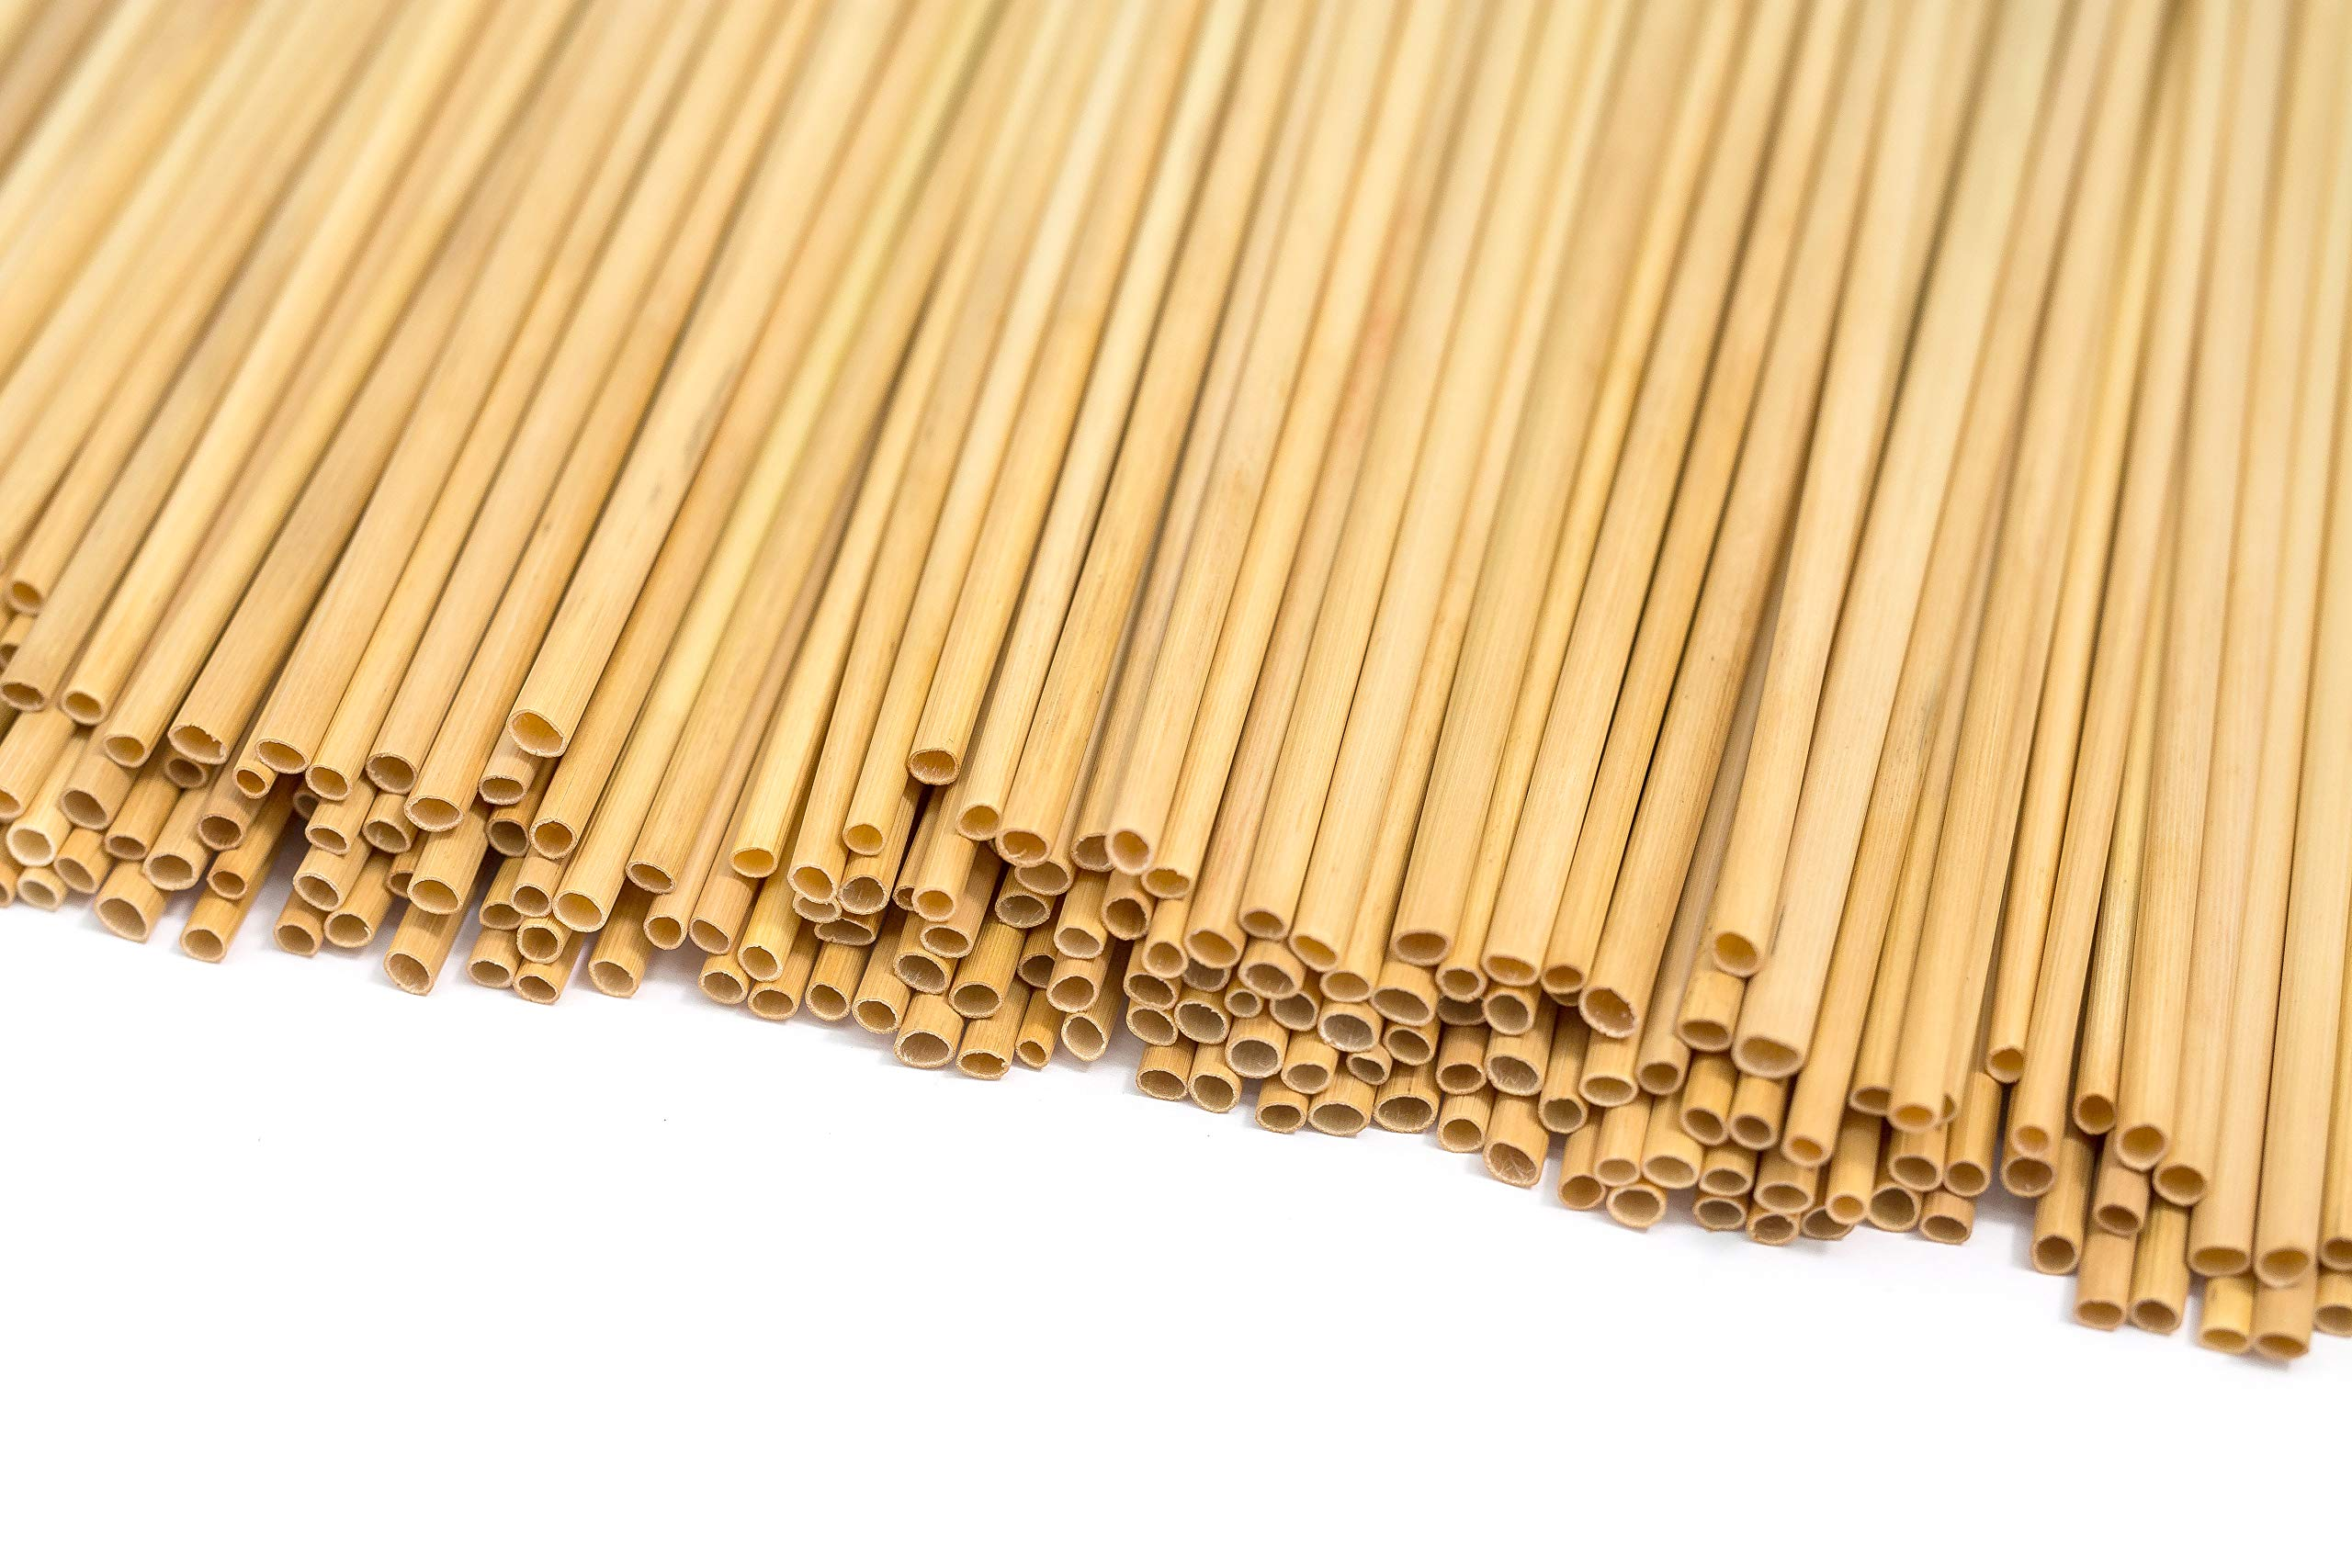 One Time Use Wheat HAY Drinking Straws – Join The #NoStrawChallenge - Biodegradable, Organic, BPA Free, and Environmentally Friendly! Start The Conversation. (200, Wheat)